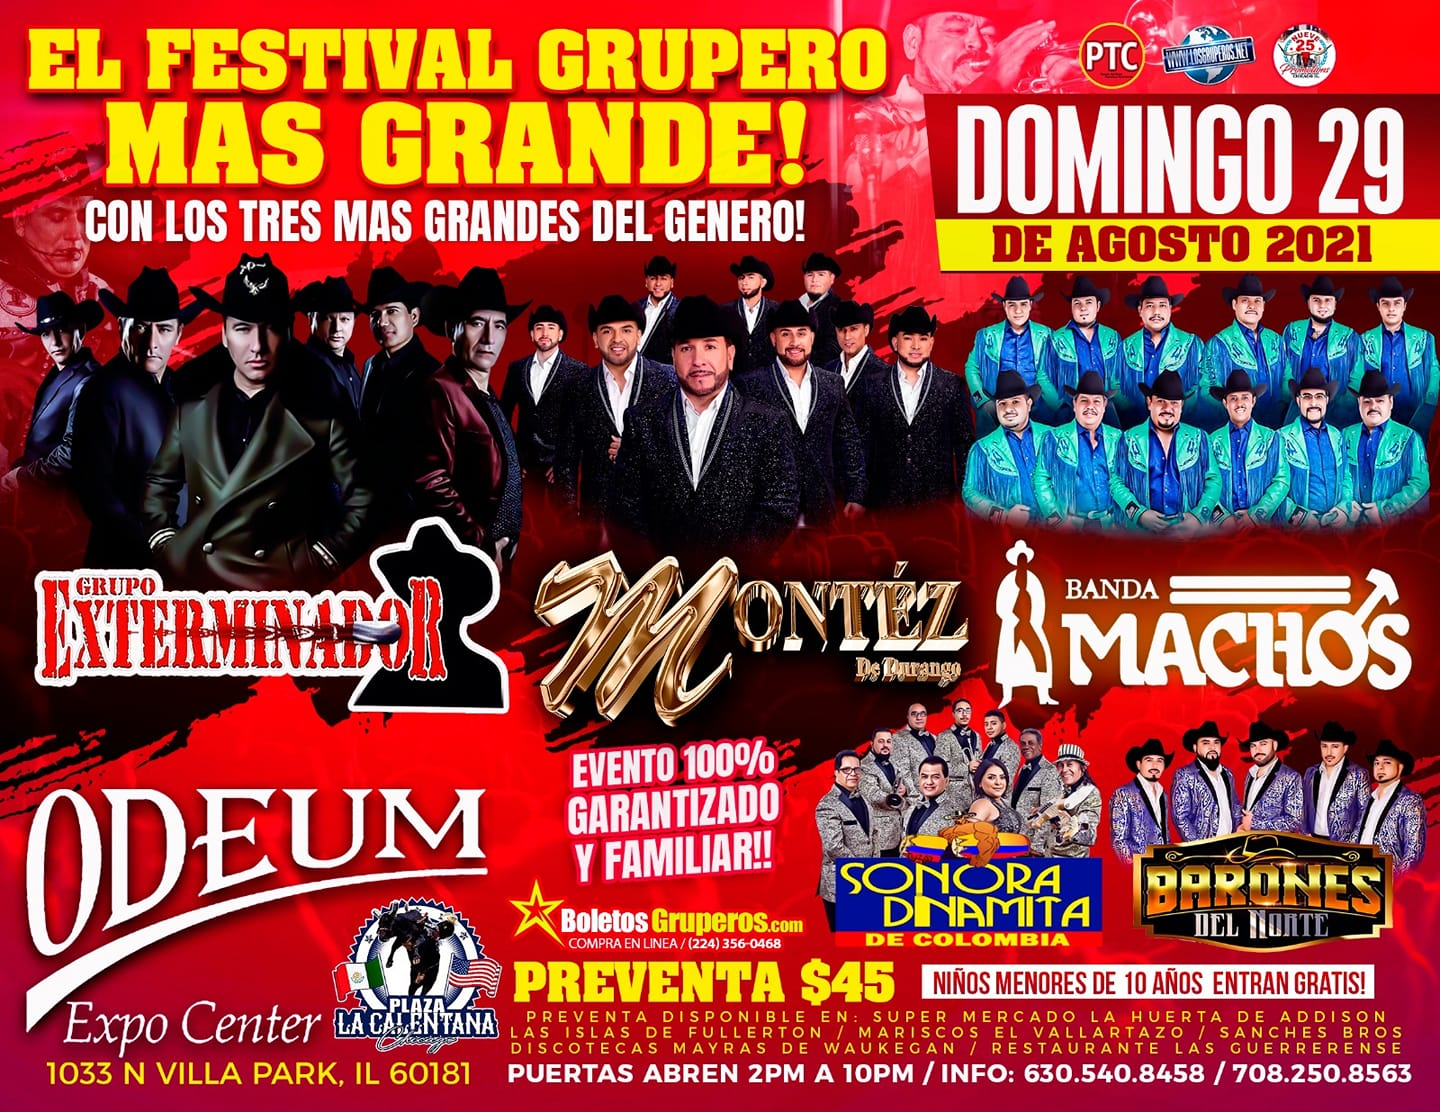 Poster for El Festival Grupero Mas Grande at the Odeum Expo Center in Villa Park, Illinois, on August 29, 2021